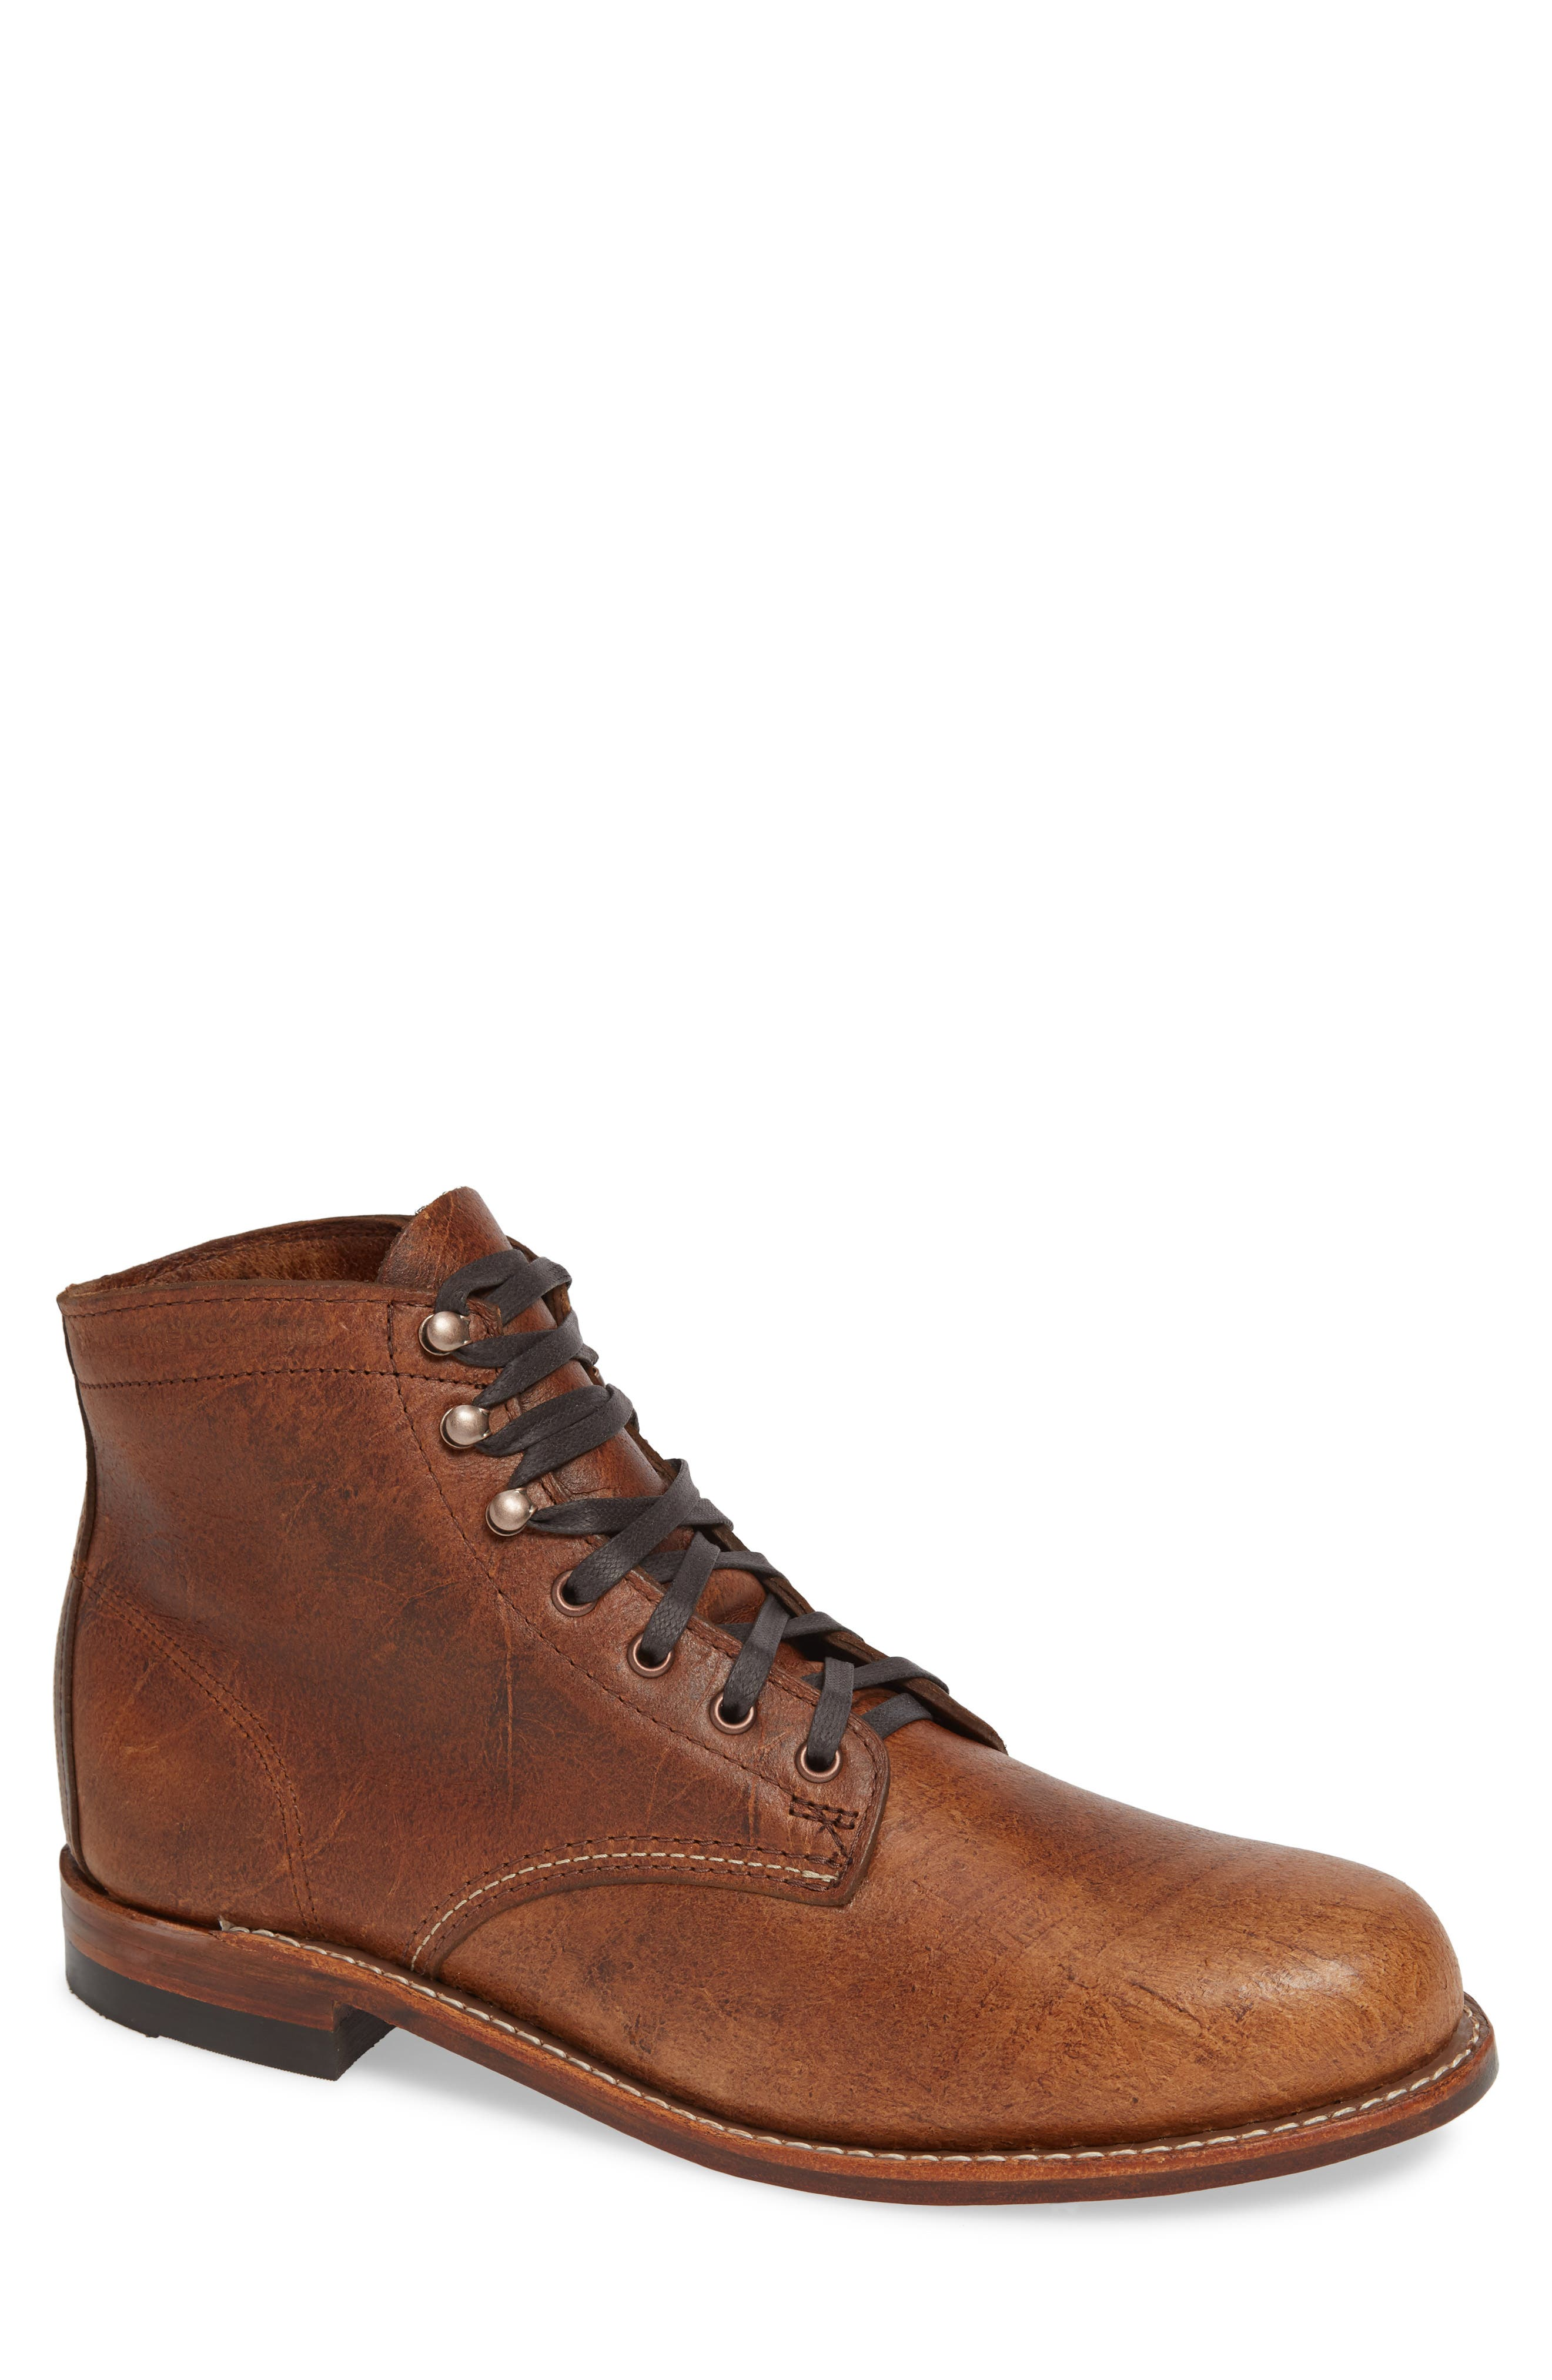 '1000 Mile' Plain Toe Boot, Main, color, COGNAC